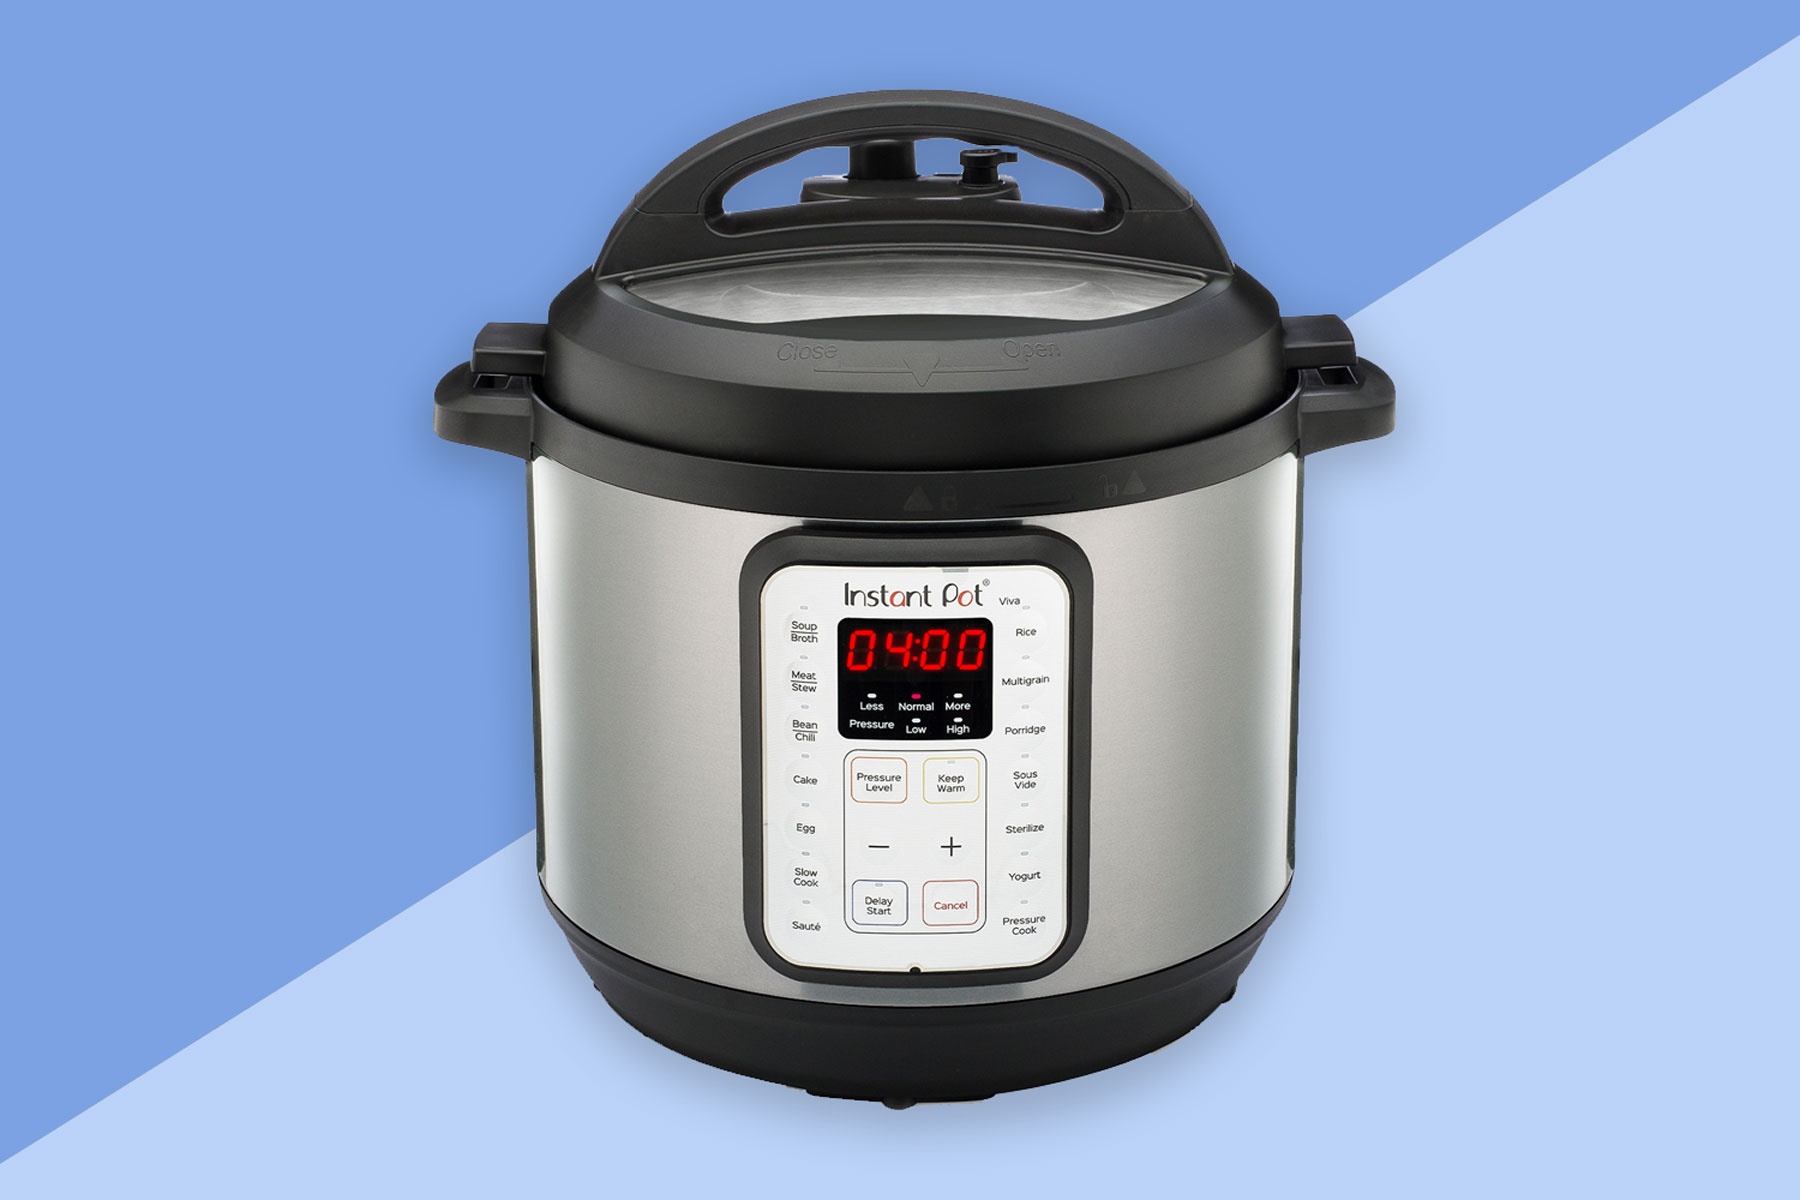 Black and stainless steel Instant Pot pressure cooker